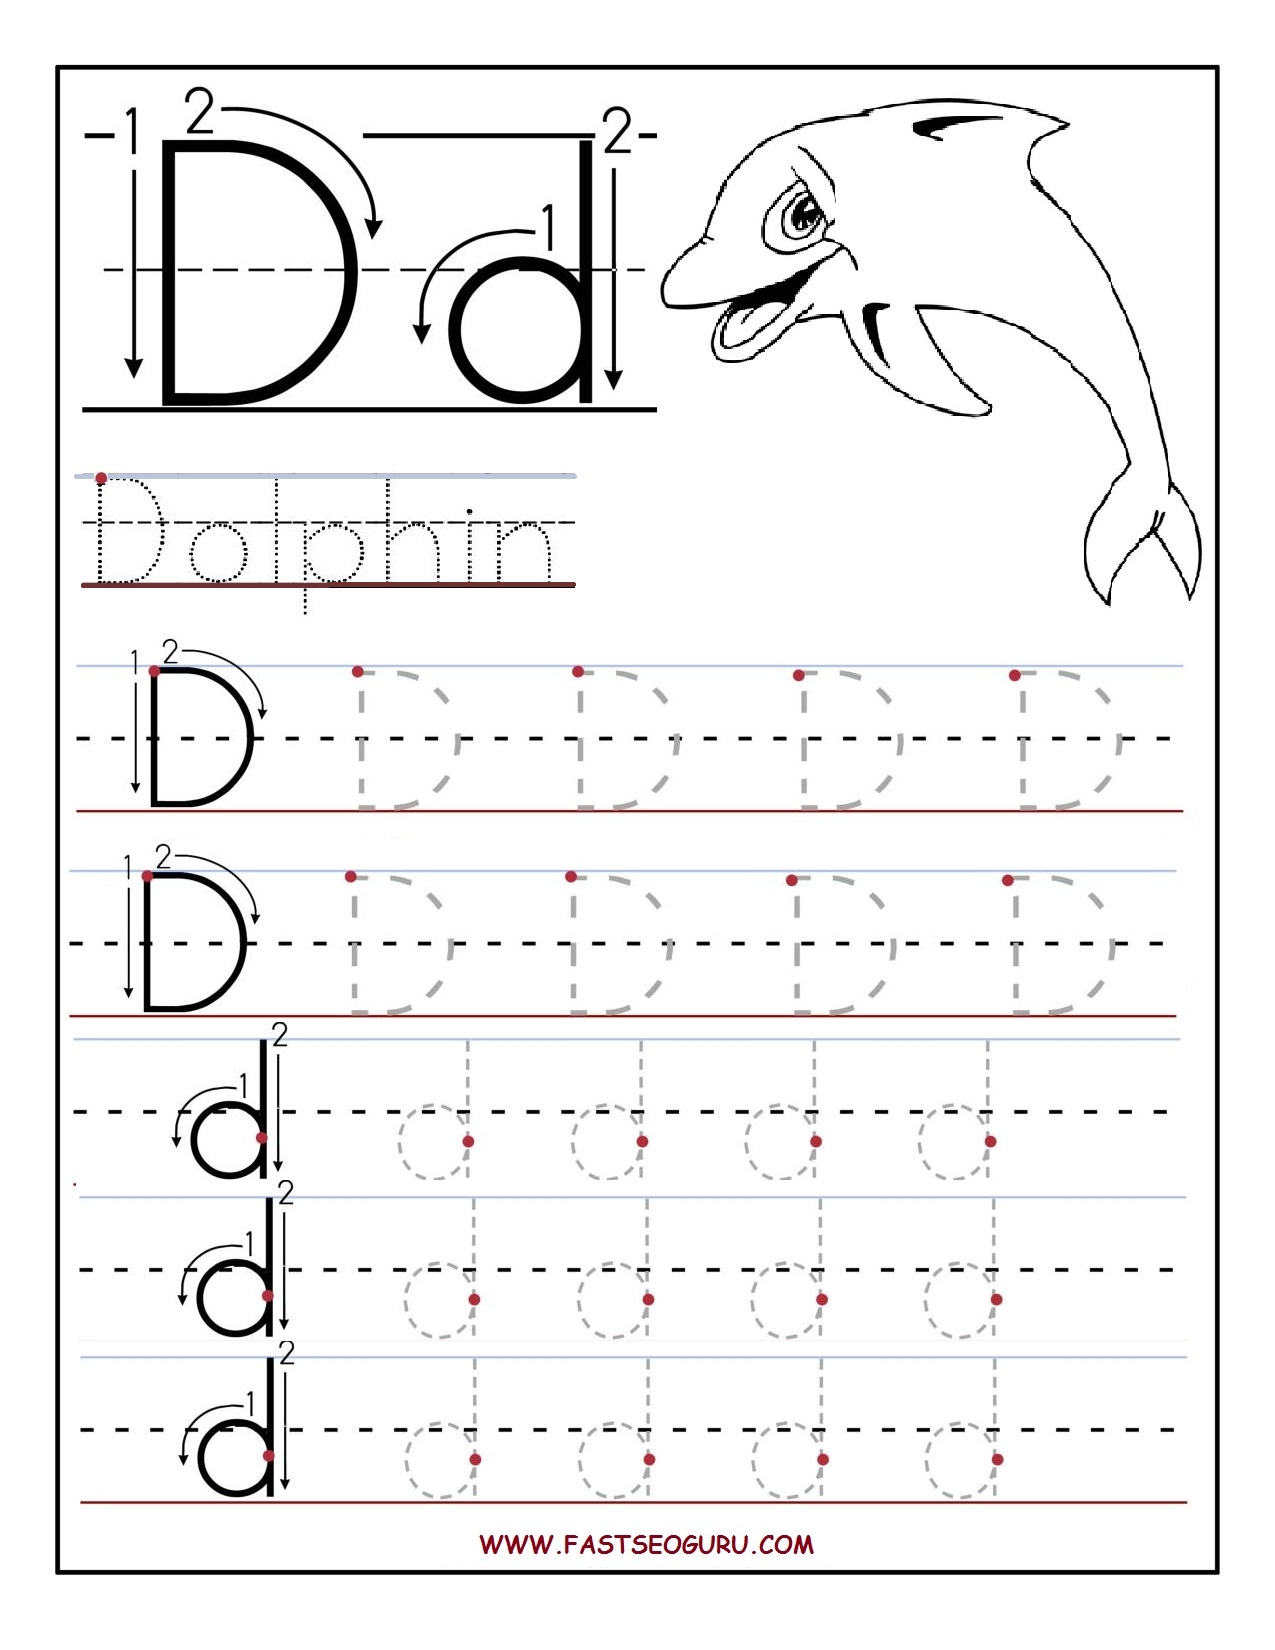 Tracing Worksheets Letter D And Printable Letters